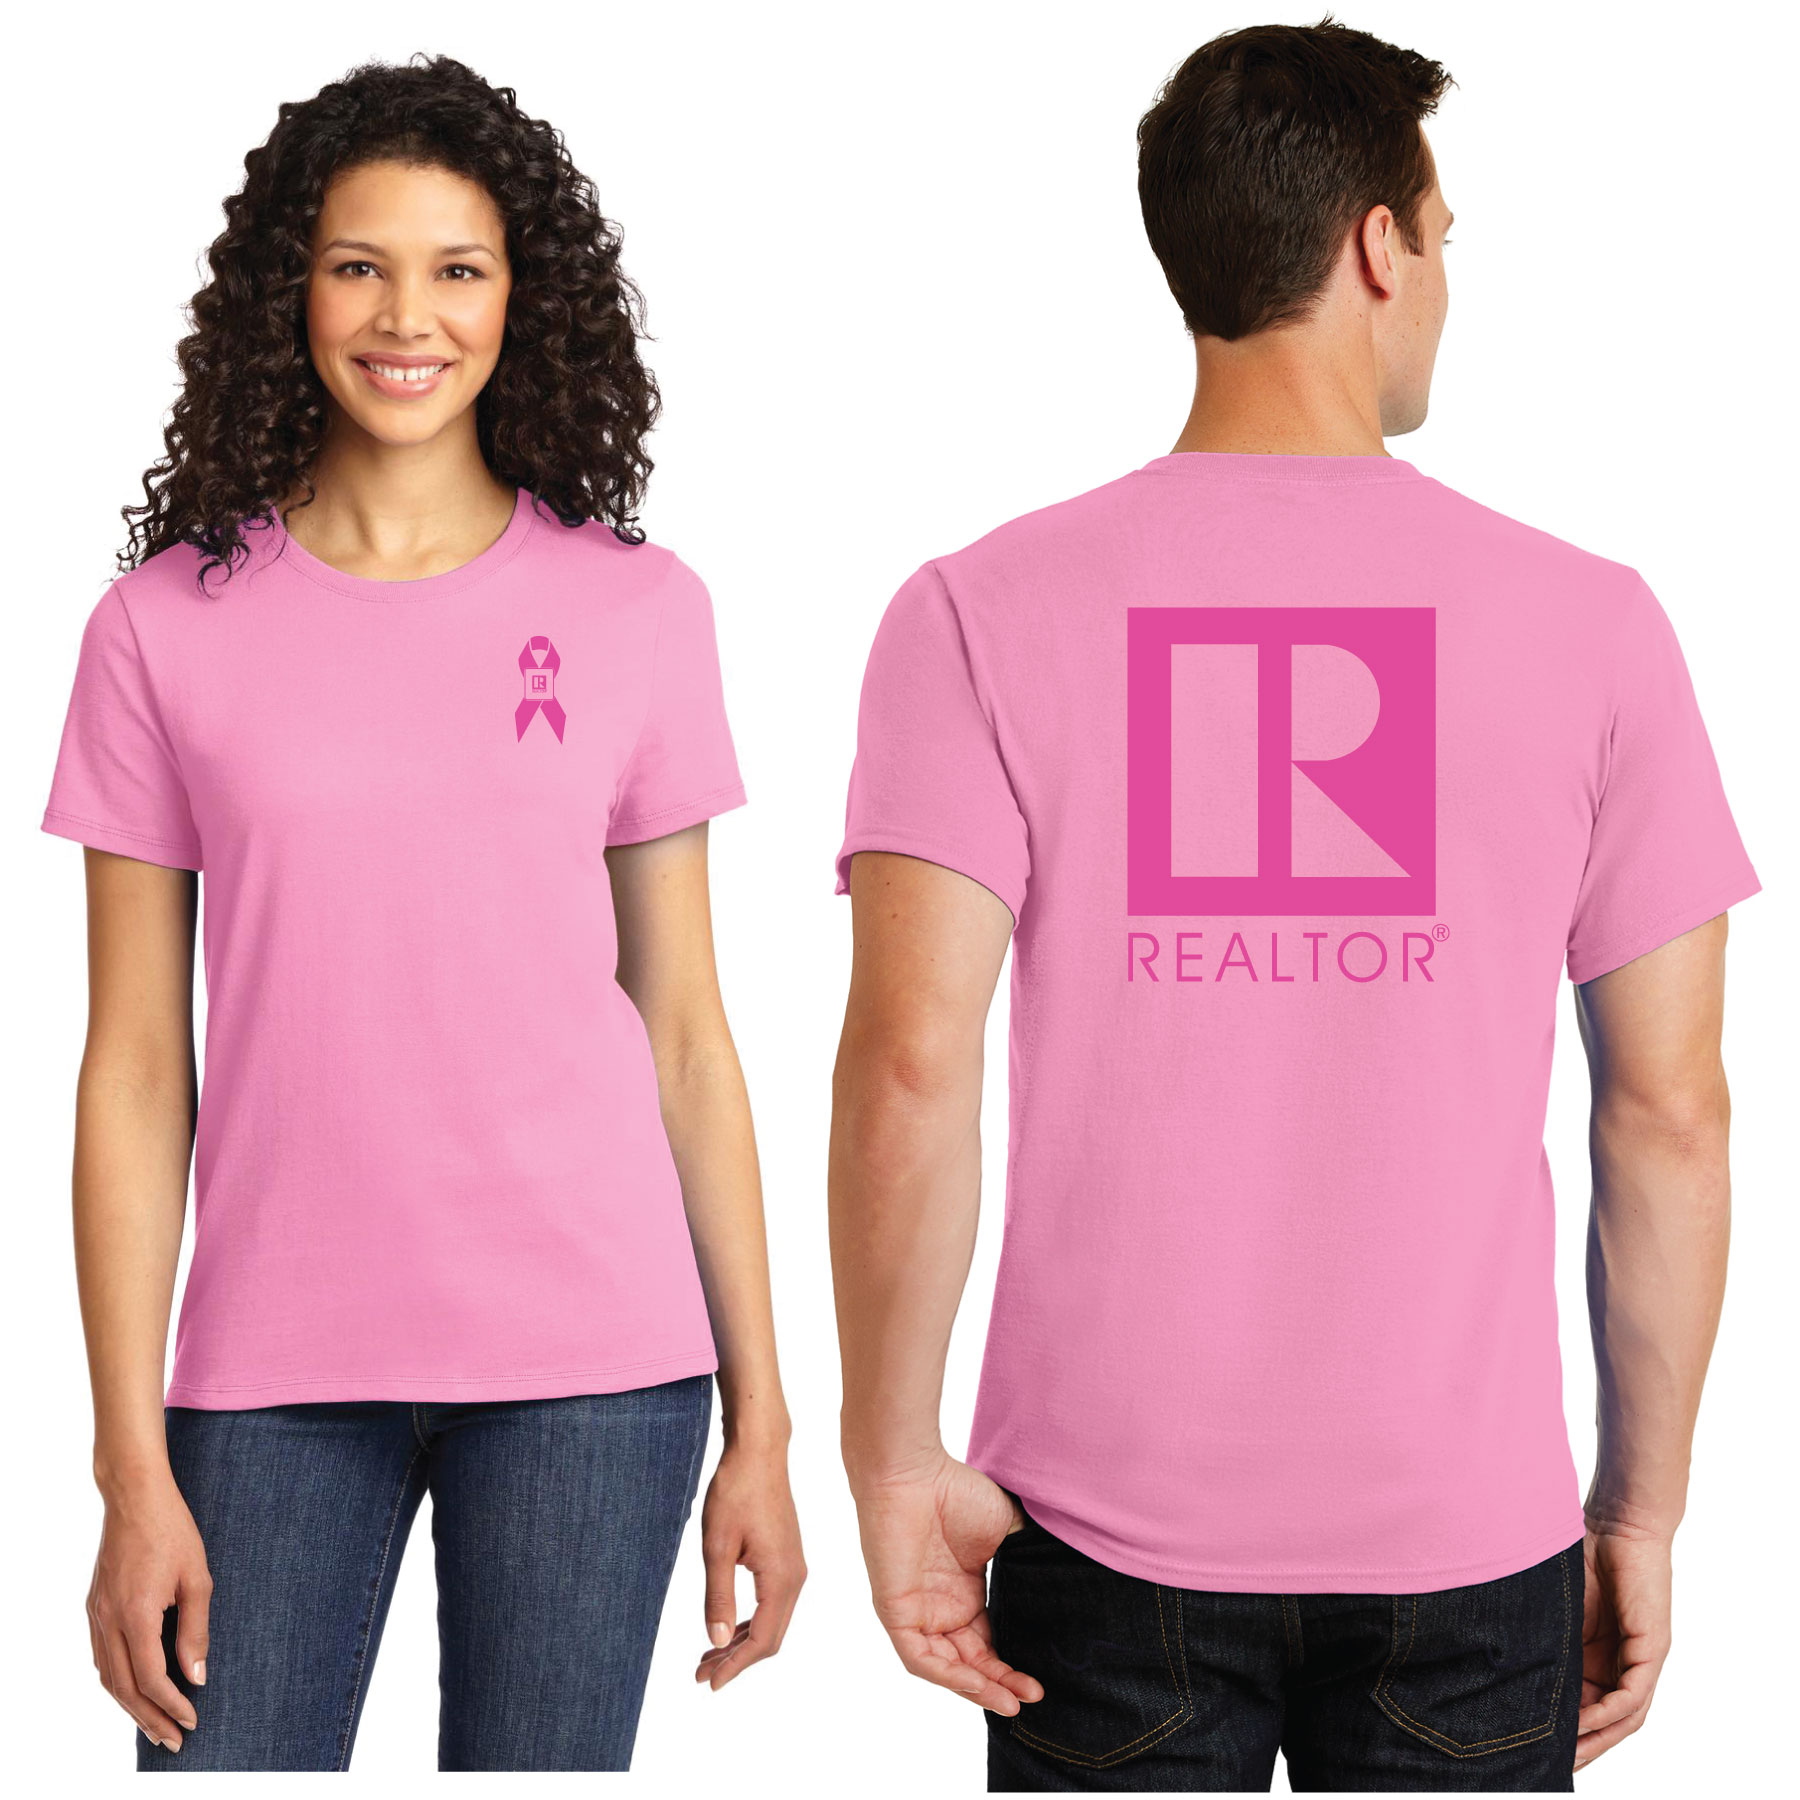 REALTOR®-logo branded Awareness Ribbon Tee Shirt Ribbons,Cancer,breast,awarenes,Casual,Board,Association,Gift,tshirt,teeshirt,tees,shirts,t-shirt,tee-shirt